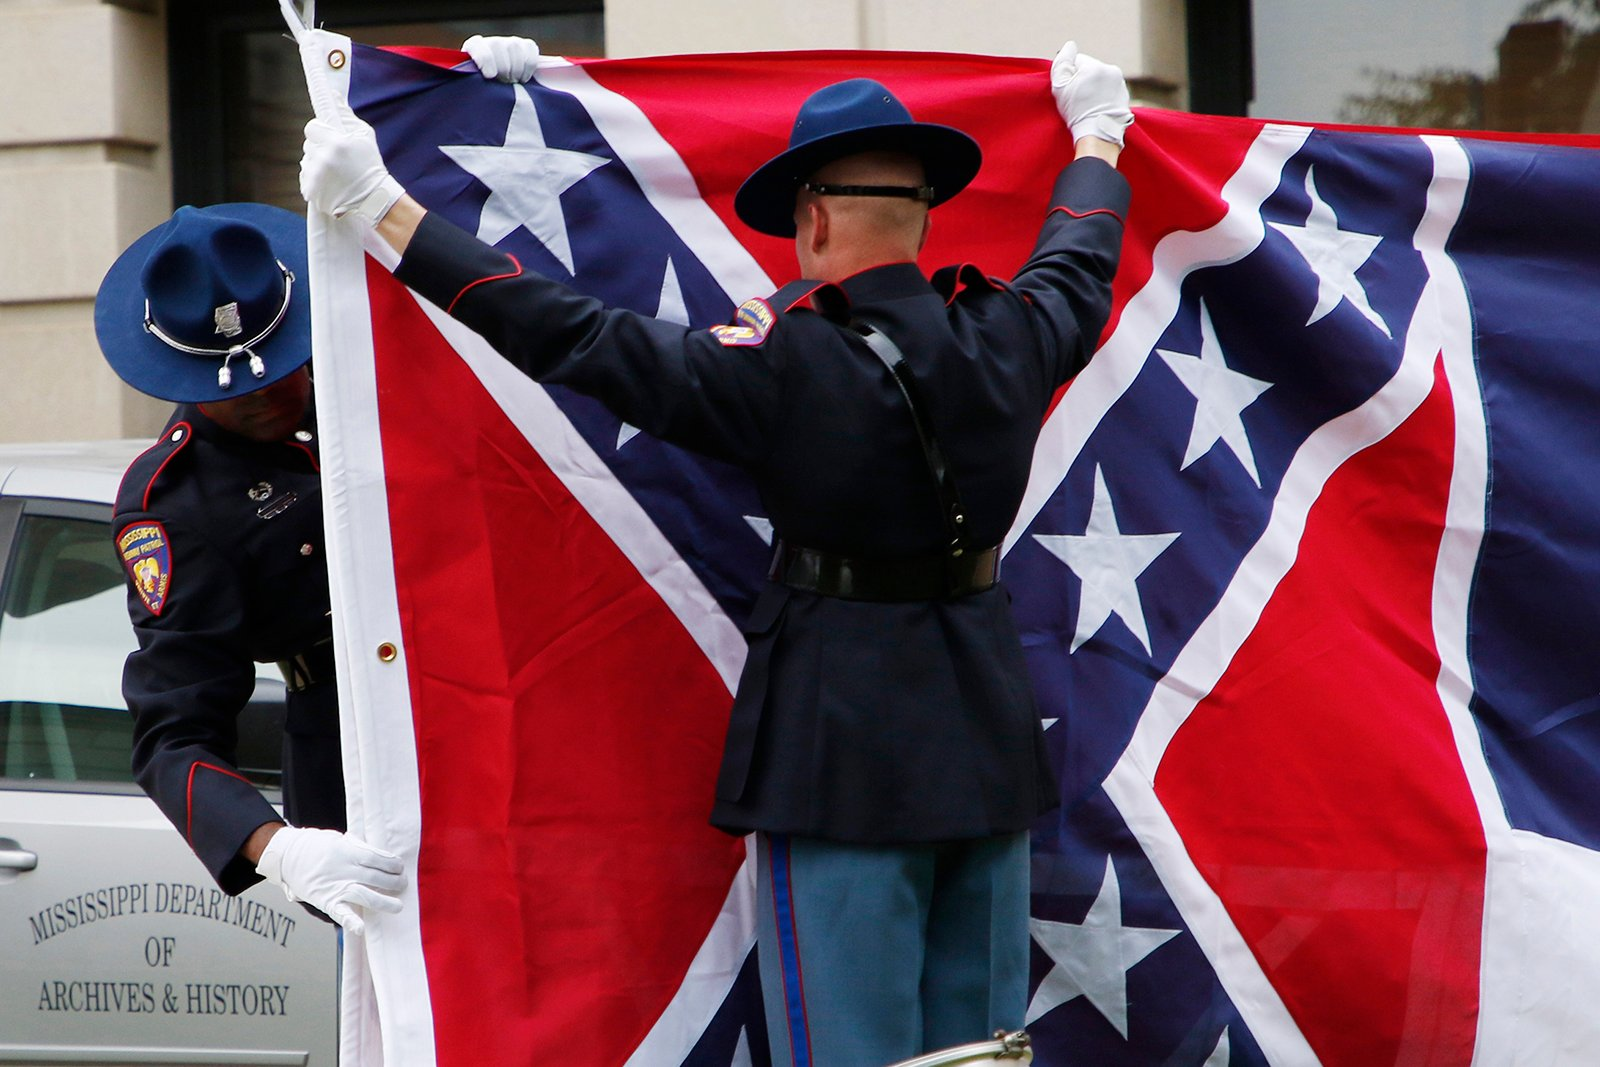 Some question replacing Mississippi's Confederate symbol with 'In God We Trust'